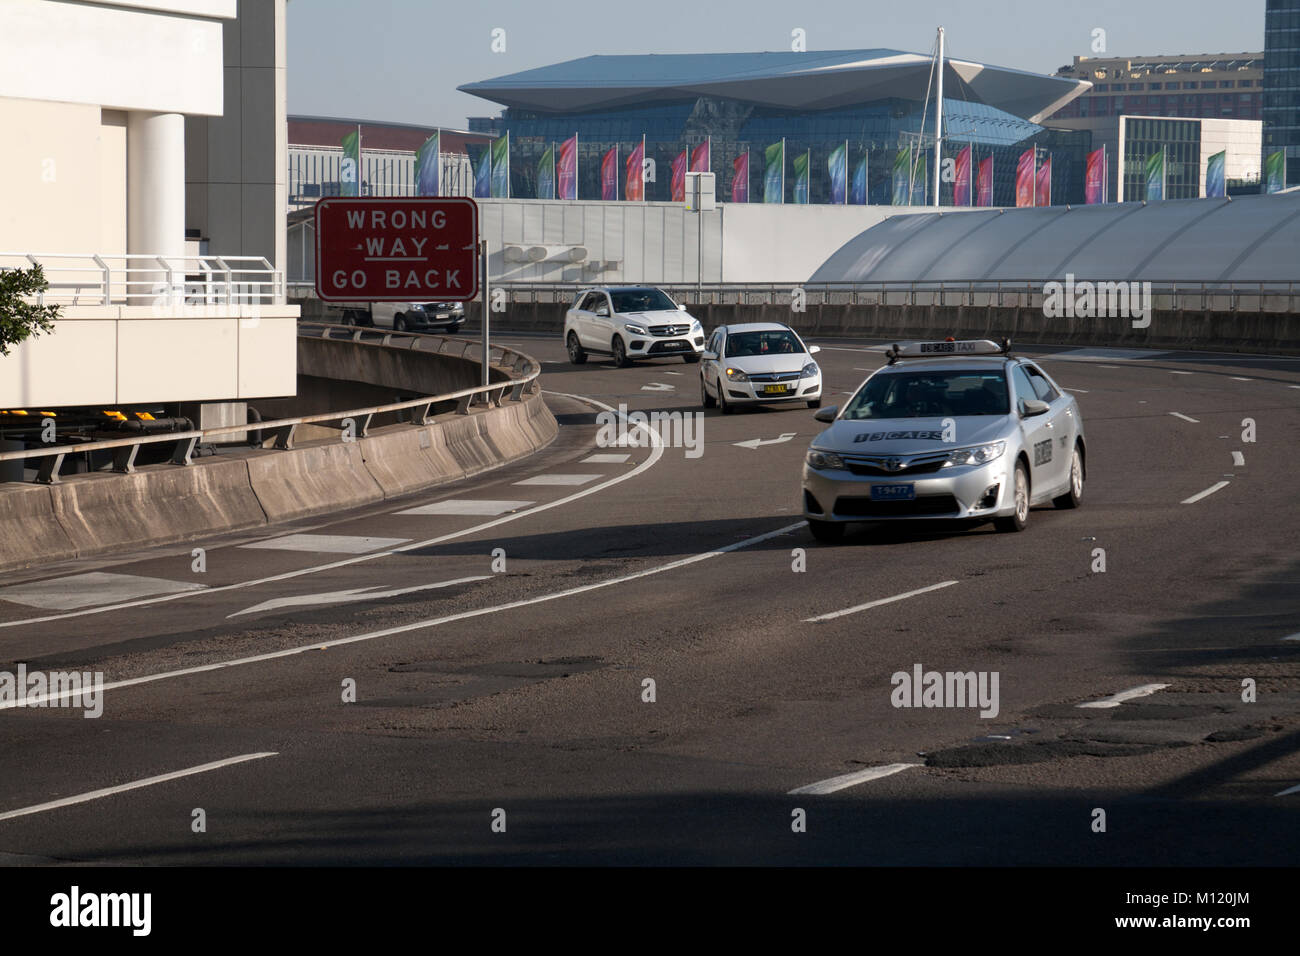 'wrong way go back' sign western distibutor road darling harbour sydney new south wales australia - Stock Image